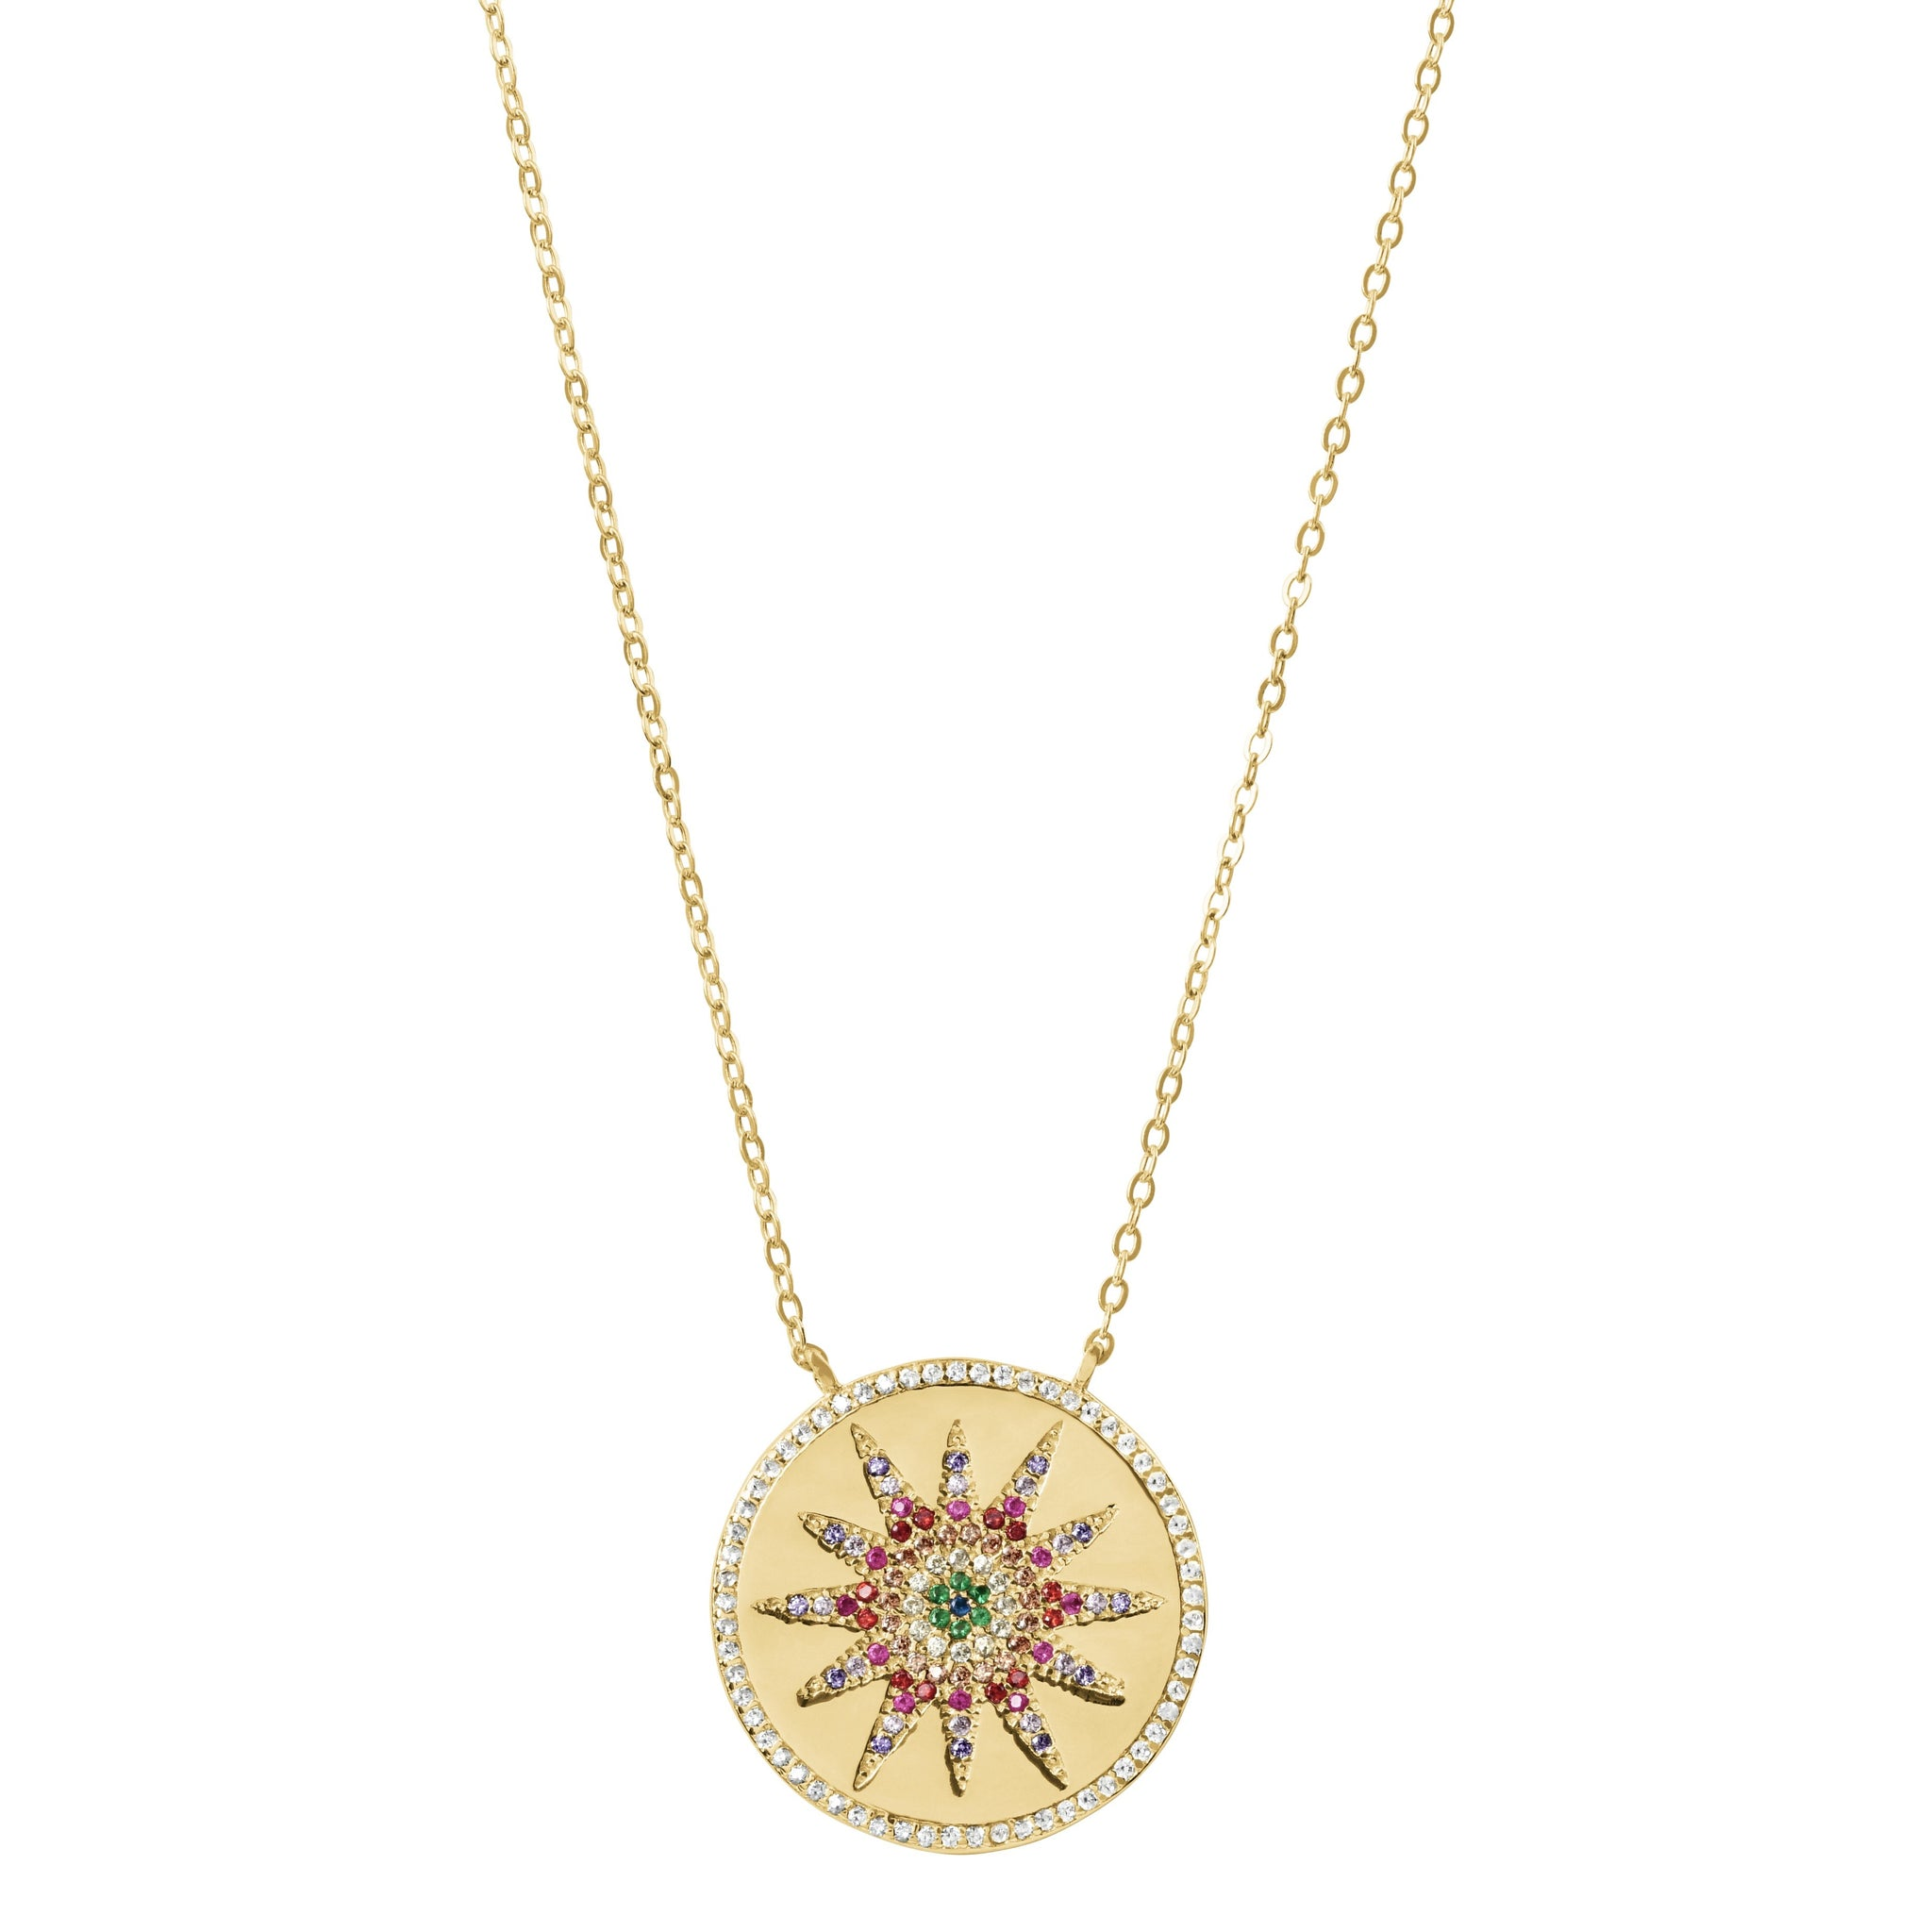 Rainbow Star Coin Pendant Necklace - Yellow Gold - Voare Jewelry